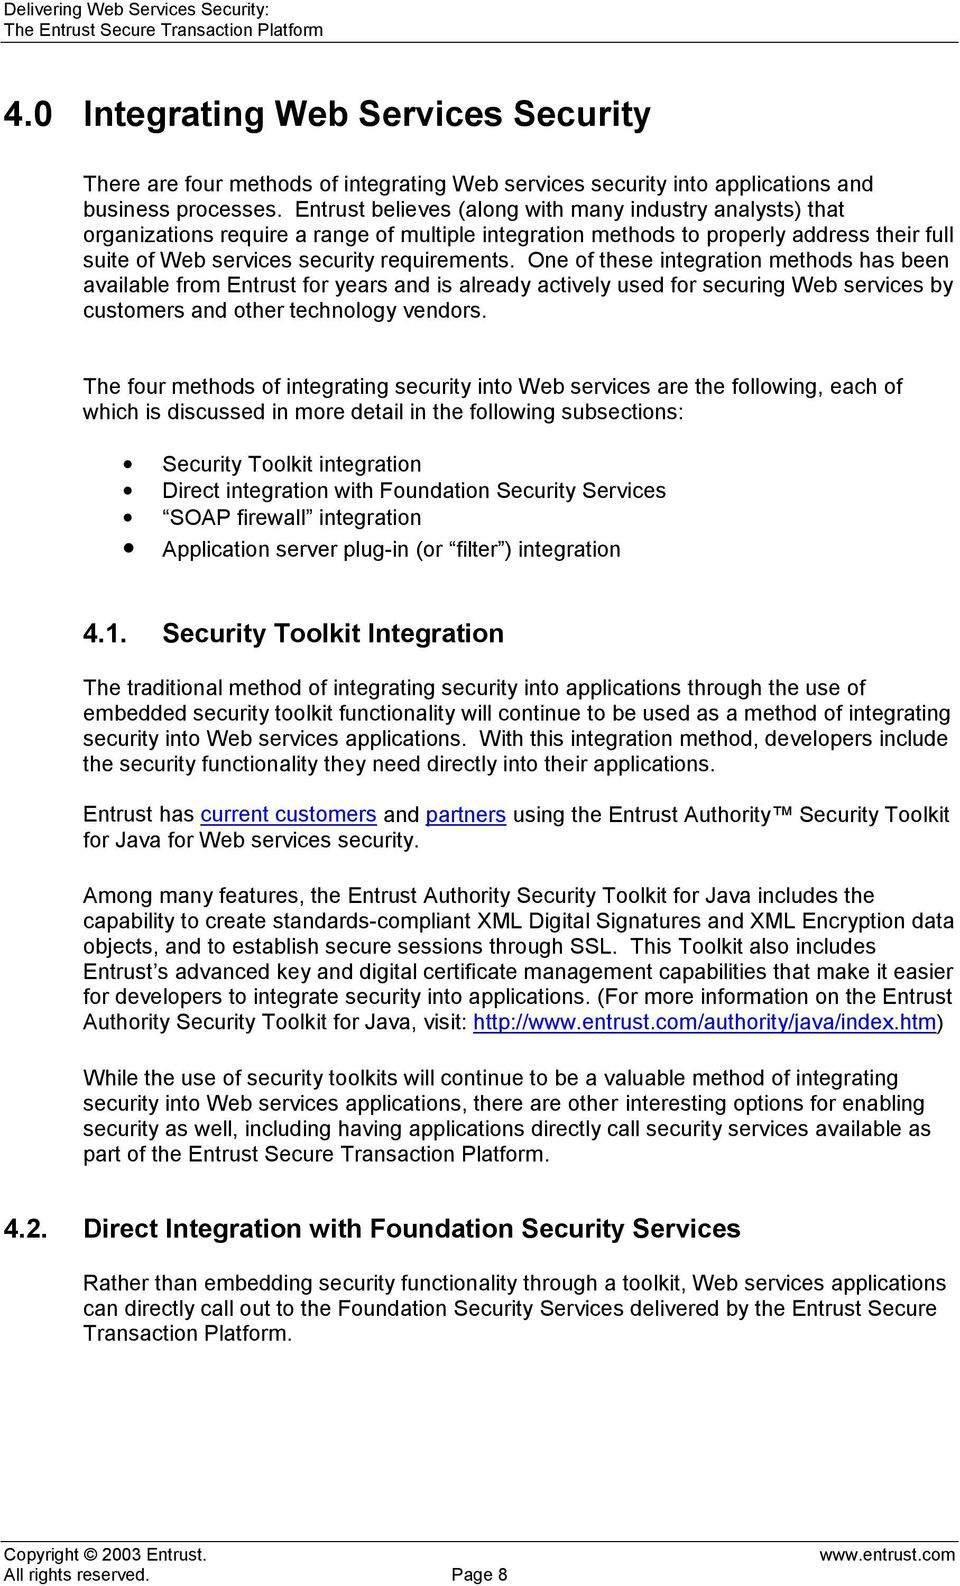 One of these integration methods has been available from Entrust for years and is already actively used for securing Web services by customers and other technology vendors.